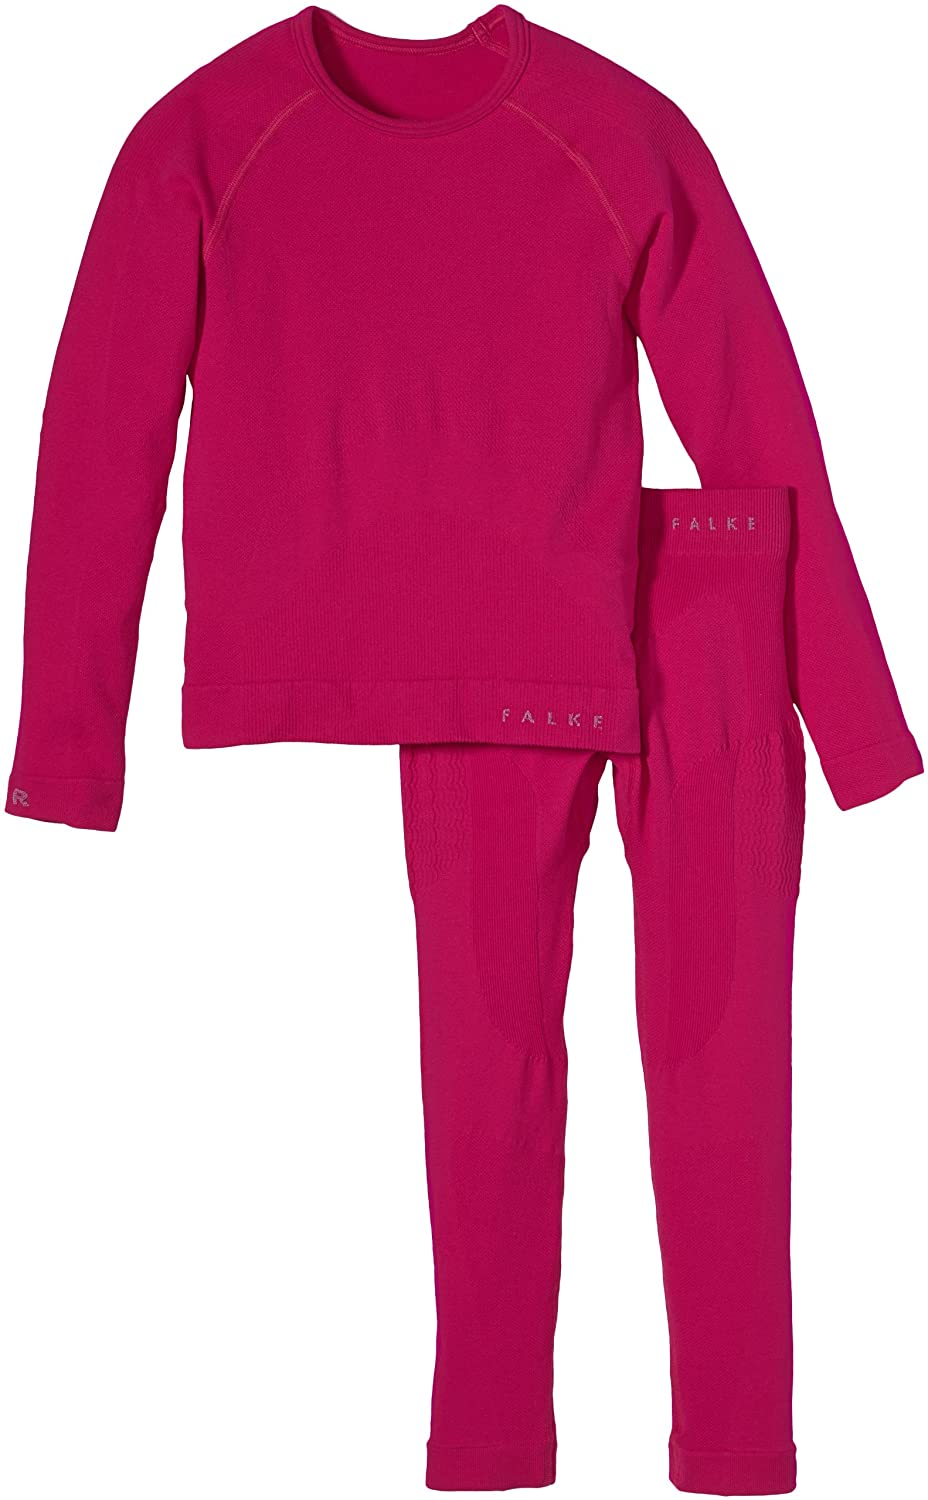 FALKE Children's Ski Underlayer Set including Shirt Long Sleeves and Tights Long